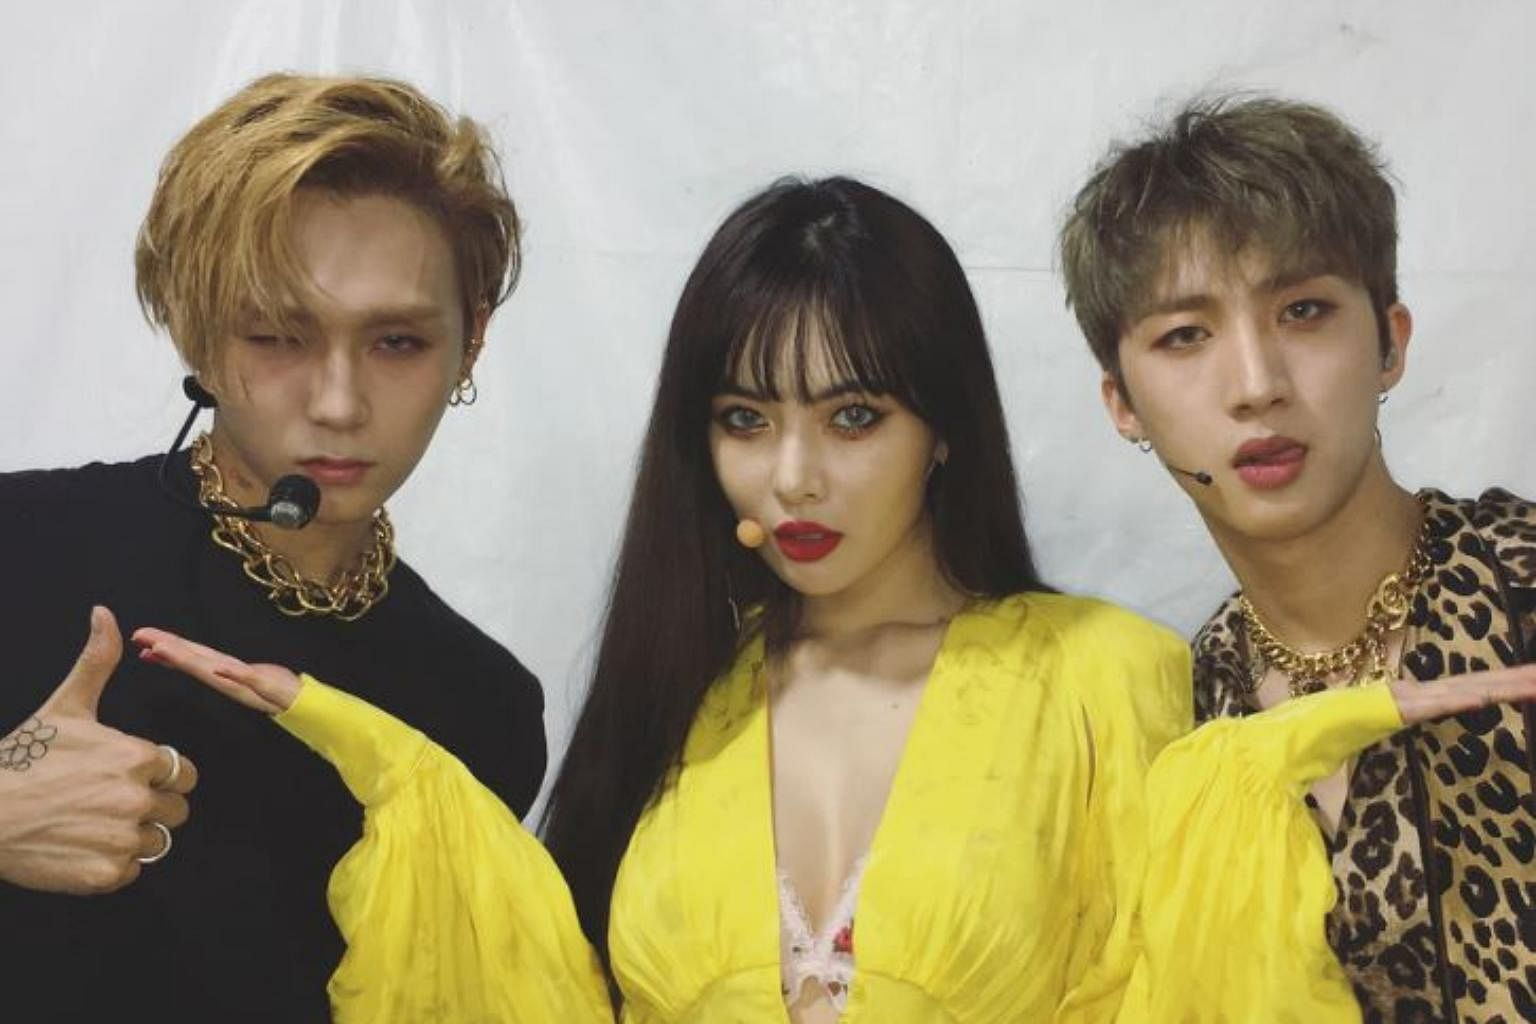 K-pop soloist HyunA and boyfriend E'Dawn's removal over